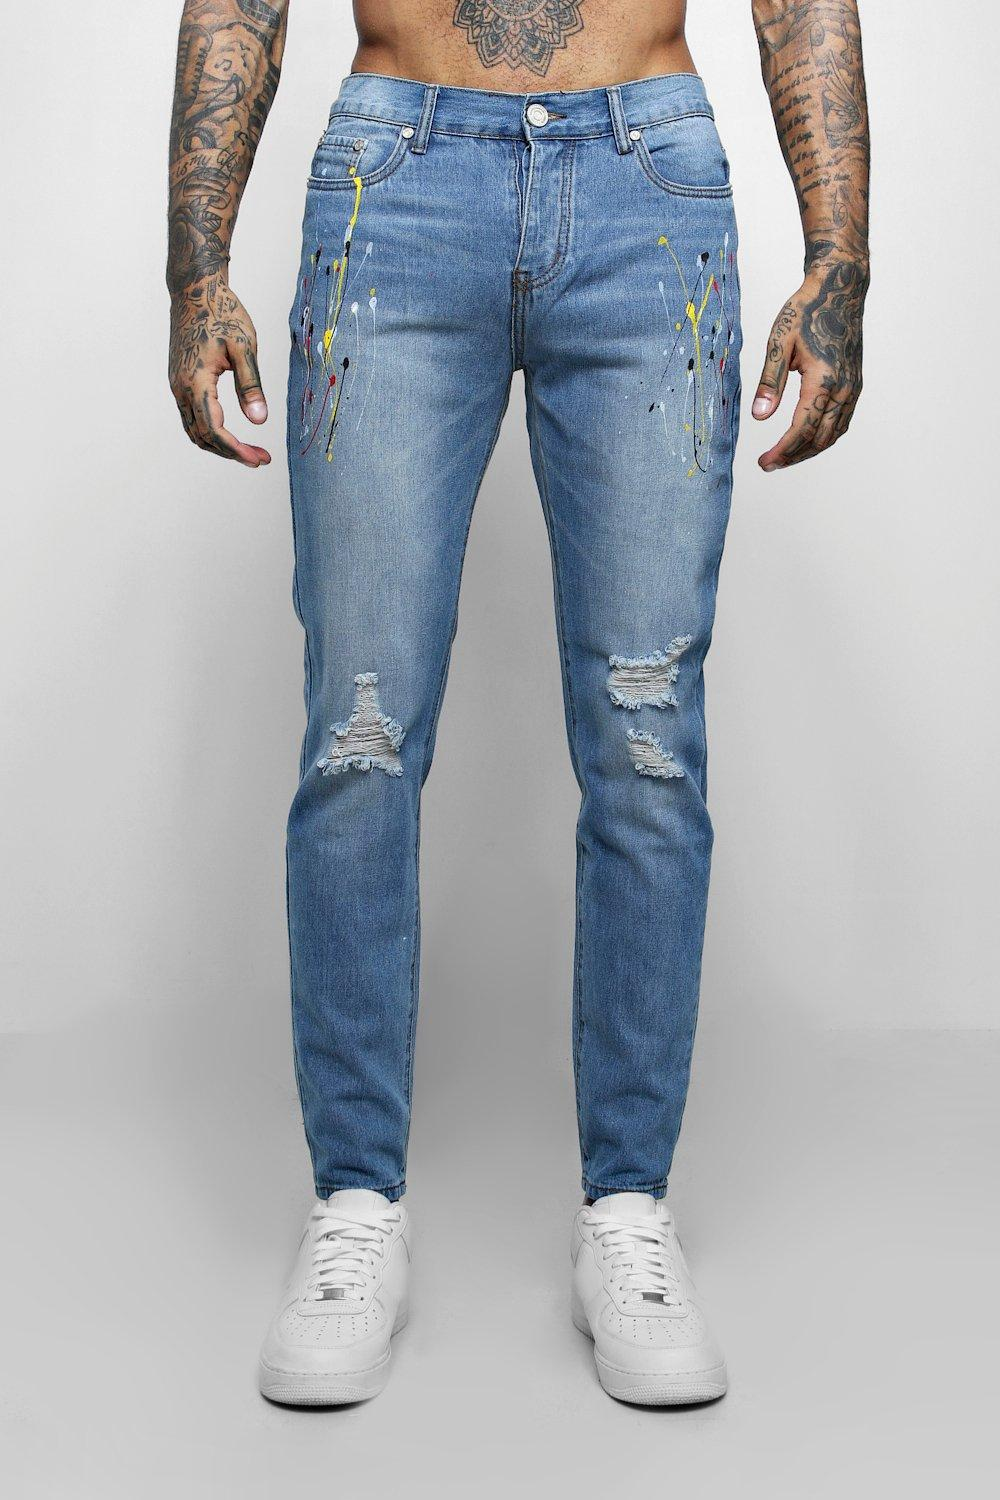 Skinny Fit Jeans With Multi Paint Splatter | Boohoo